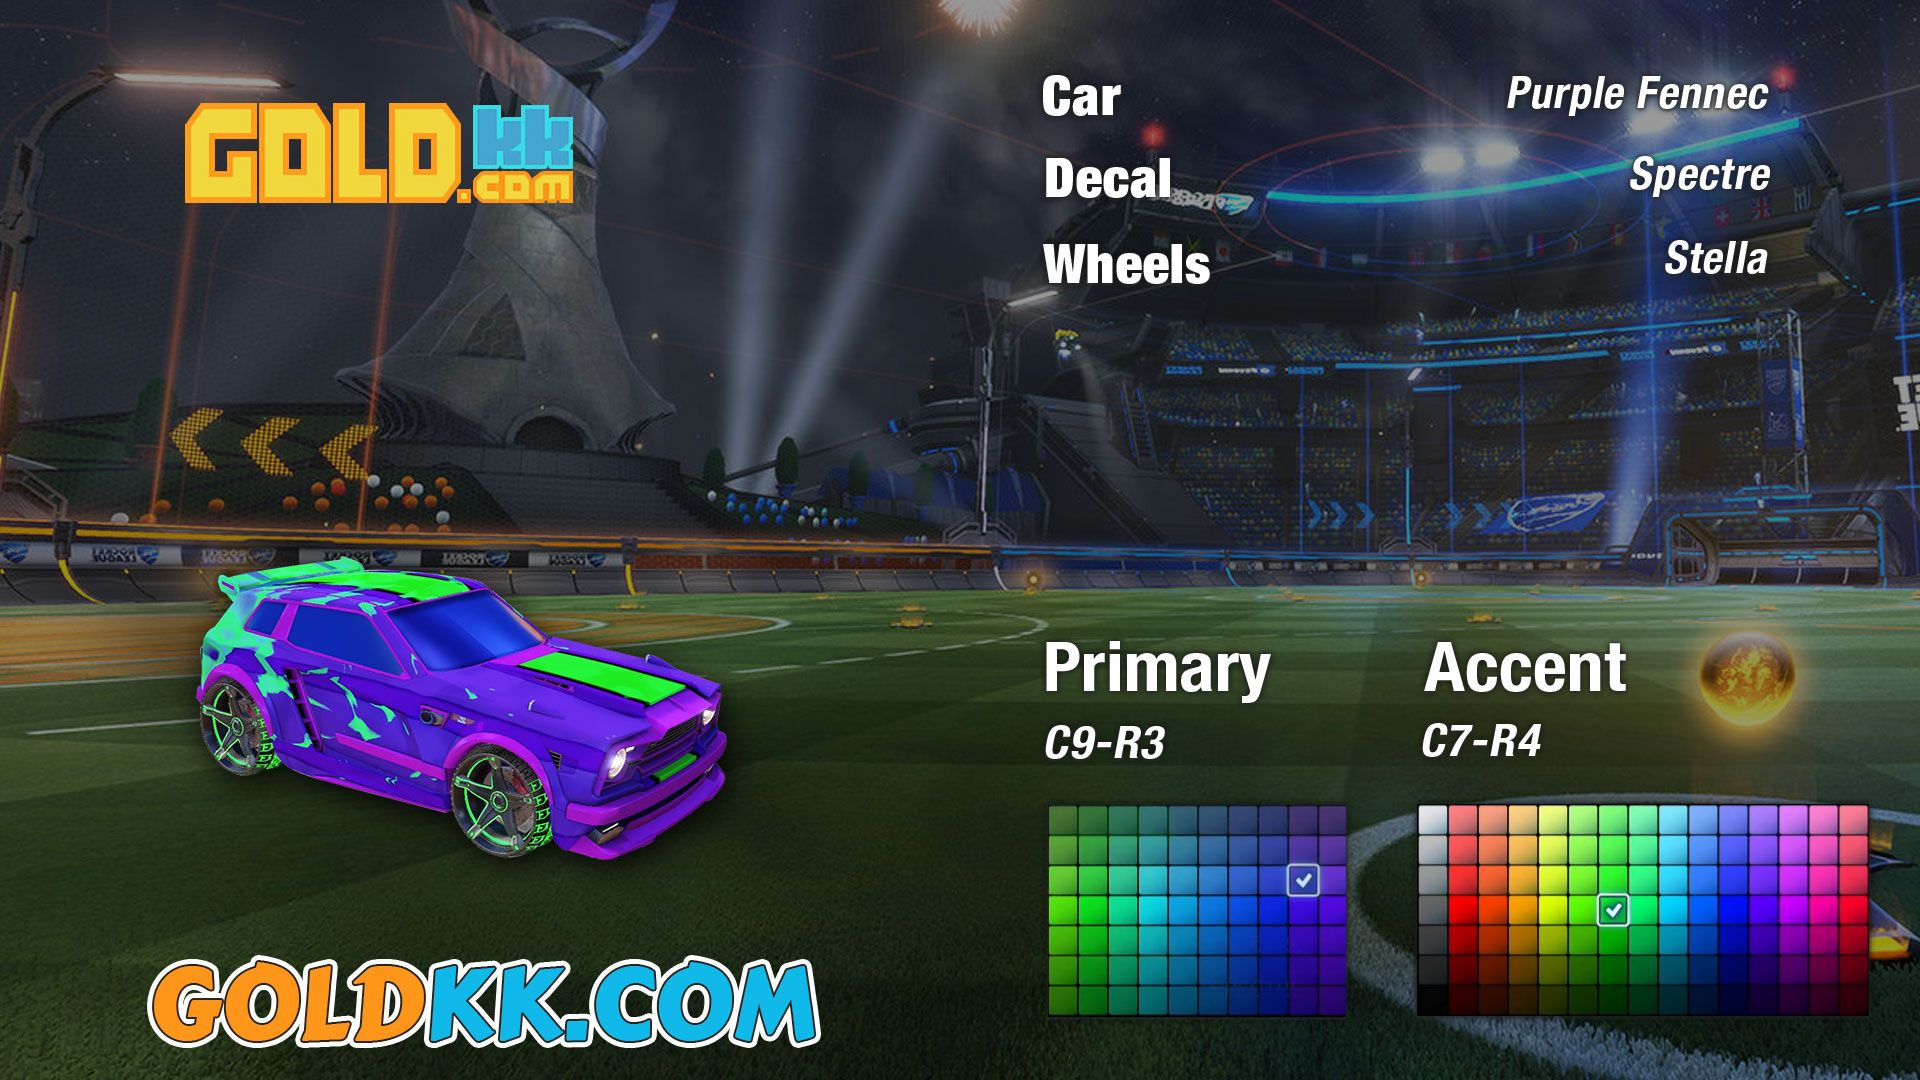 how to put a decal on a car in rocket league